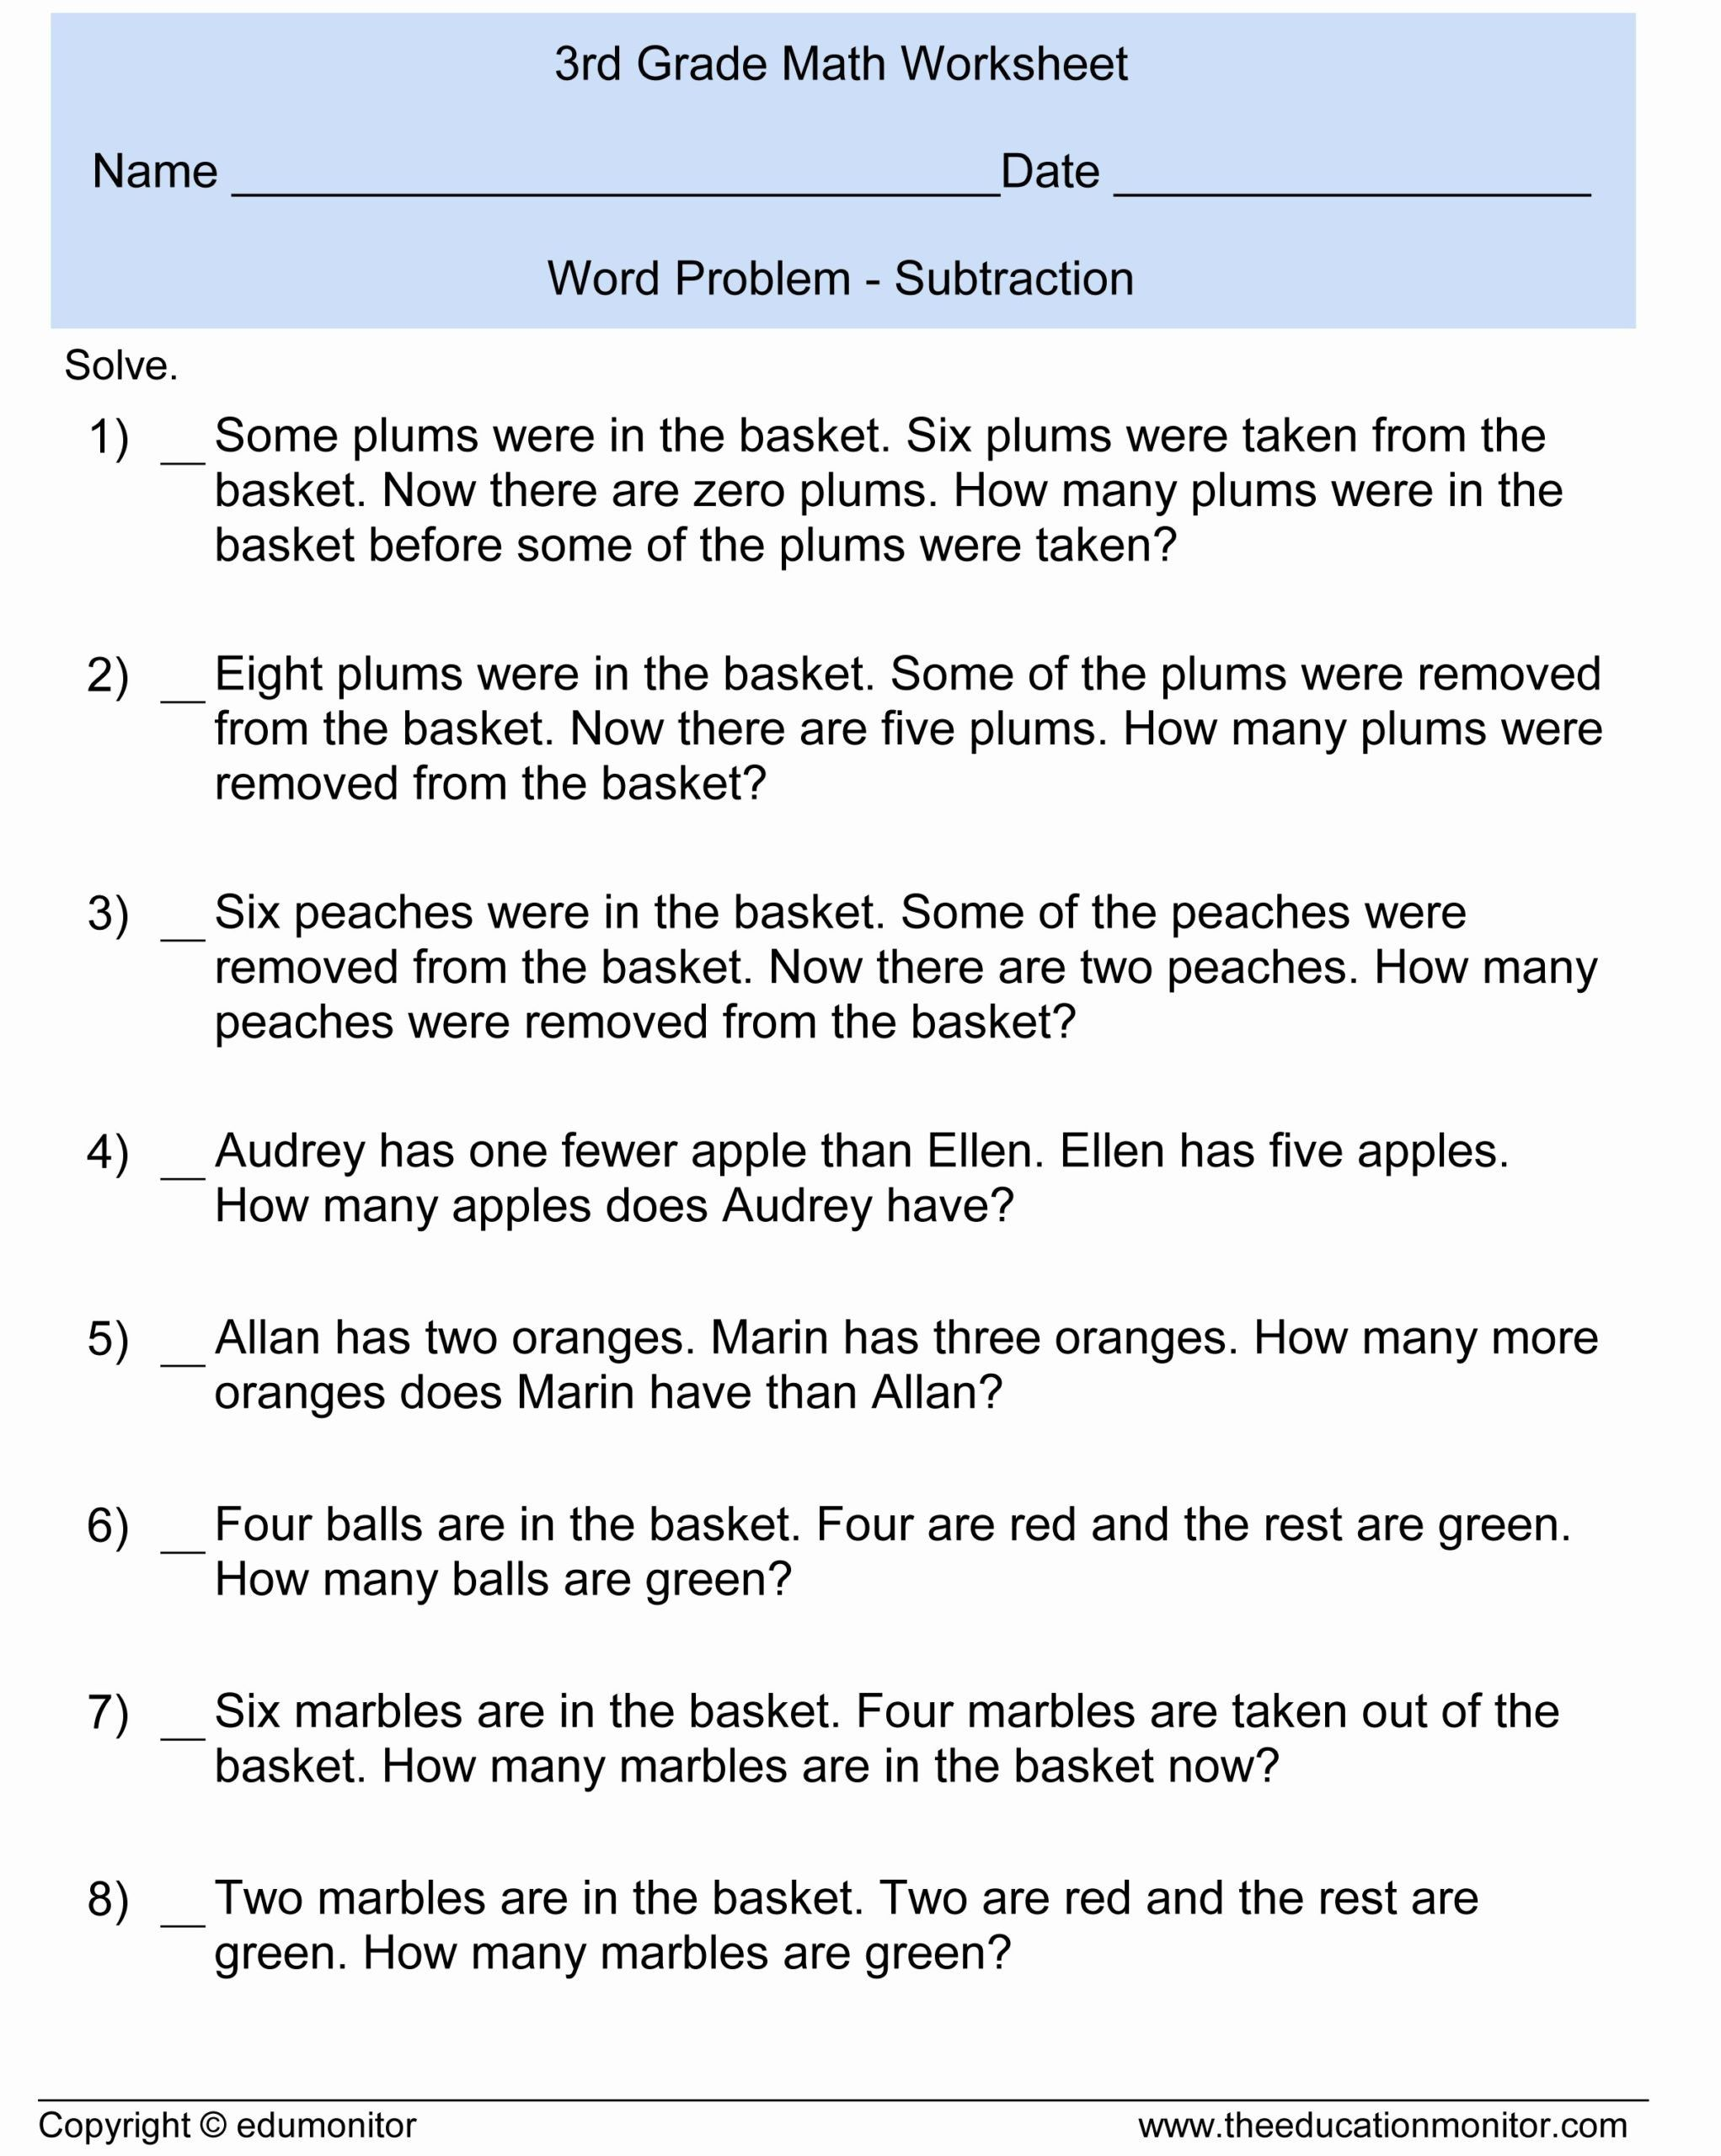 6 5th Grade Math Word Problems Worksheets In